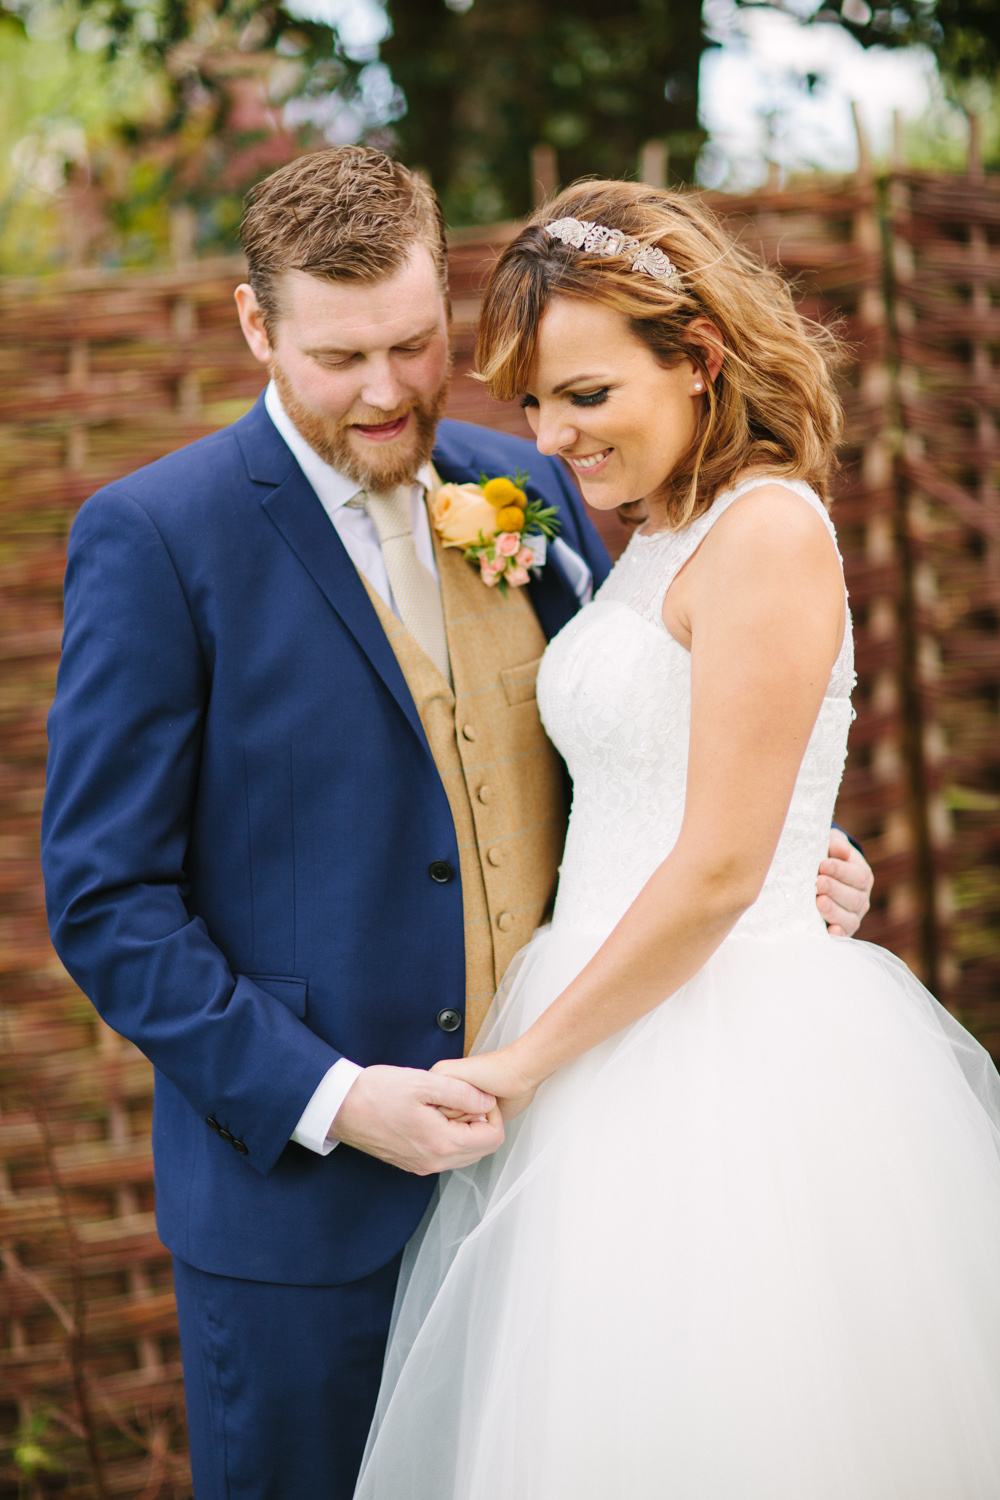 rmw-kate-holor-wedding-by-lee-allen-52-of-121